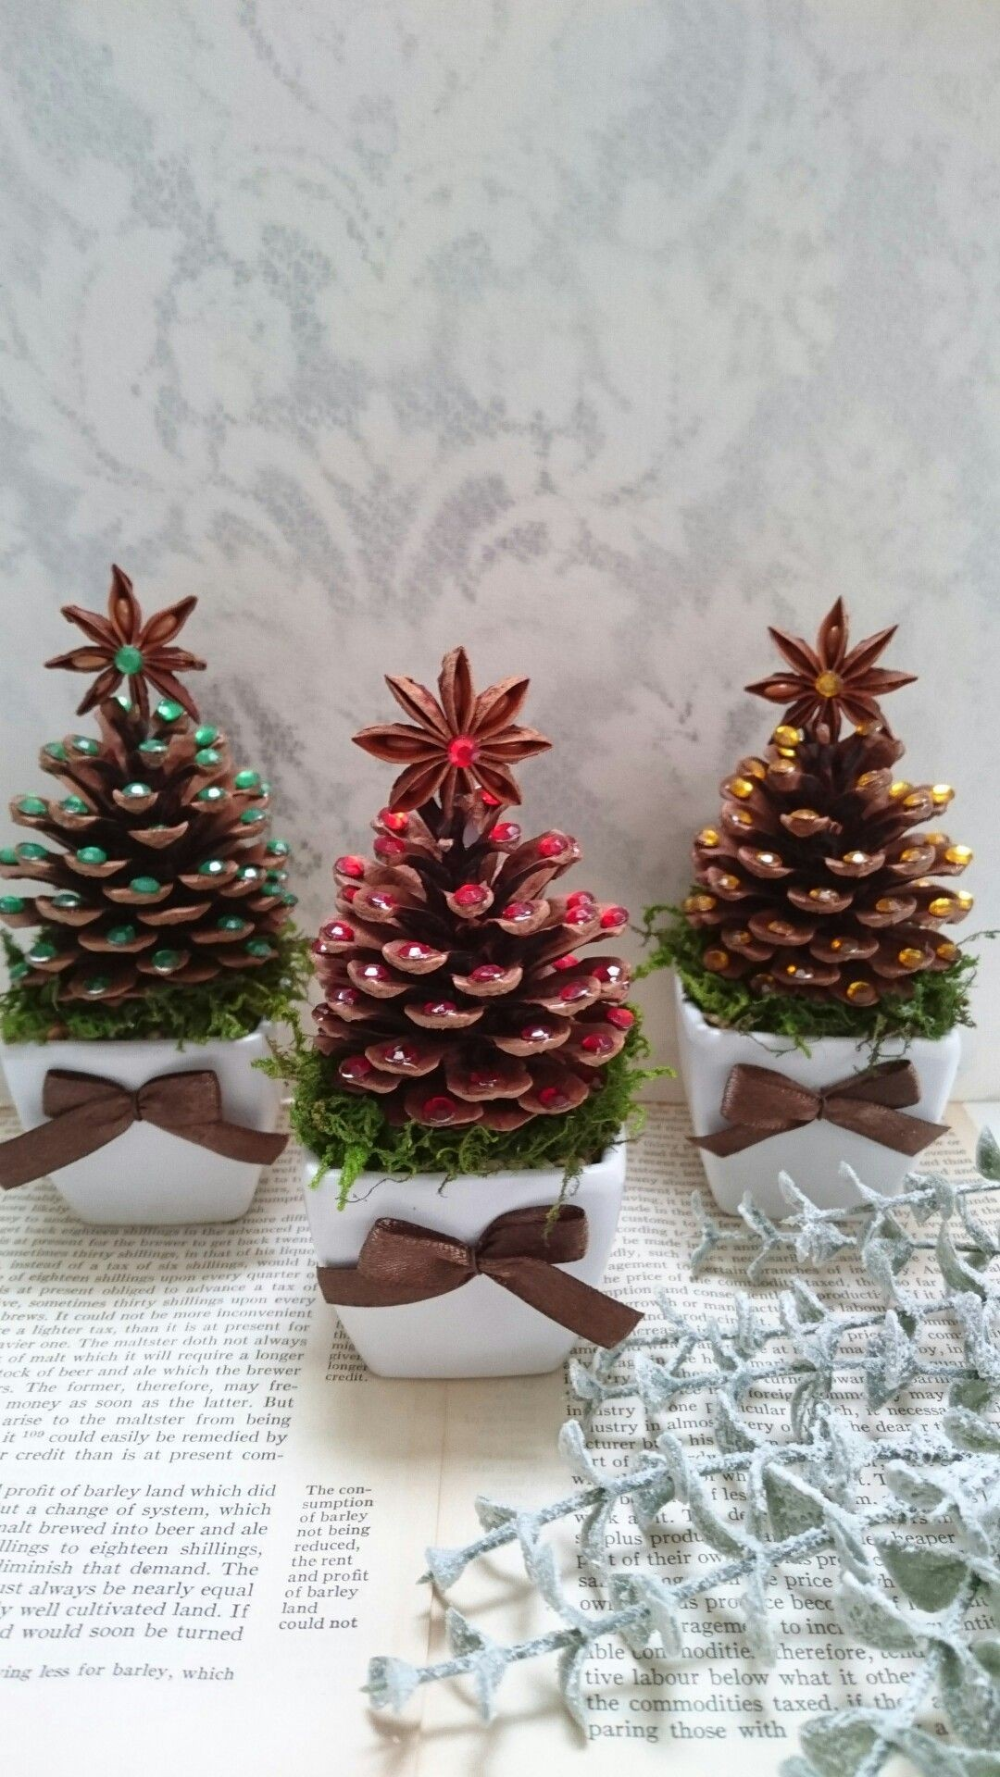 It is important to have a pleasant and beautiful living environment. Let these green plants accompany you for Christmas